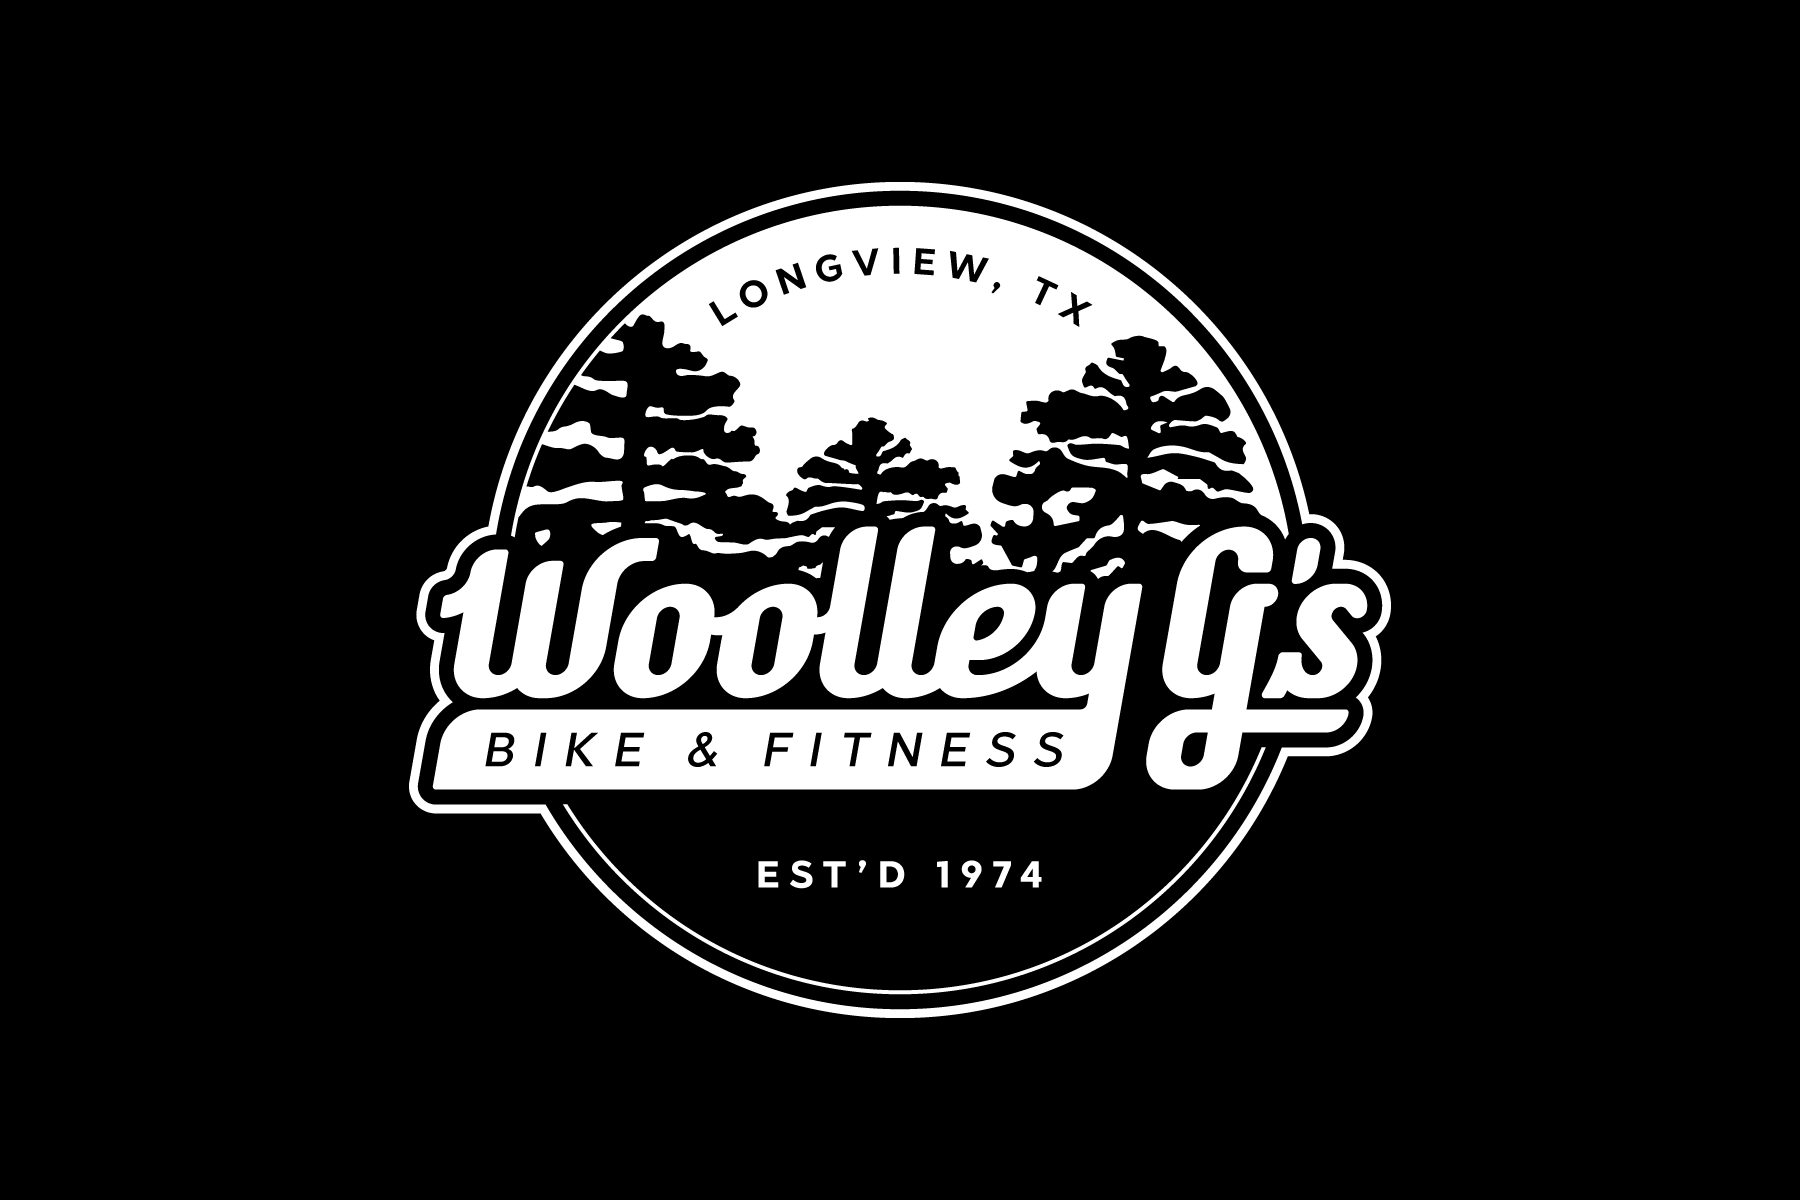 Woolley G's Bike and Fitness